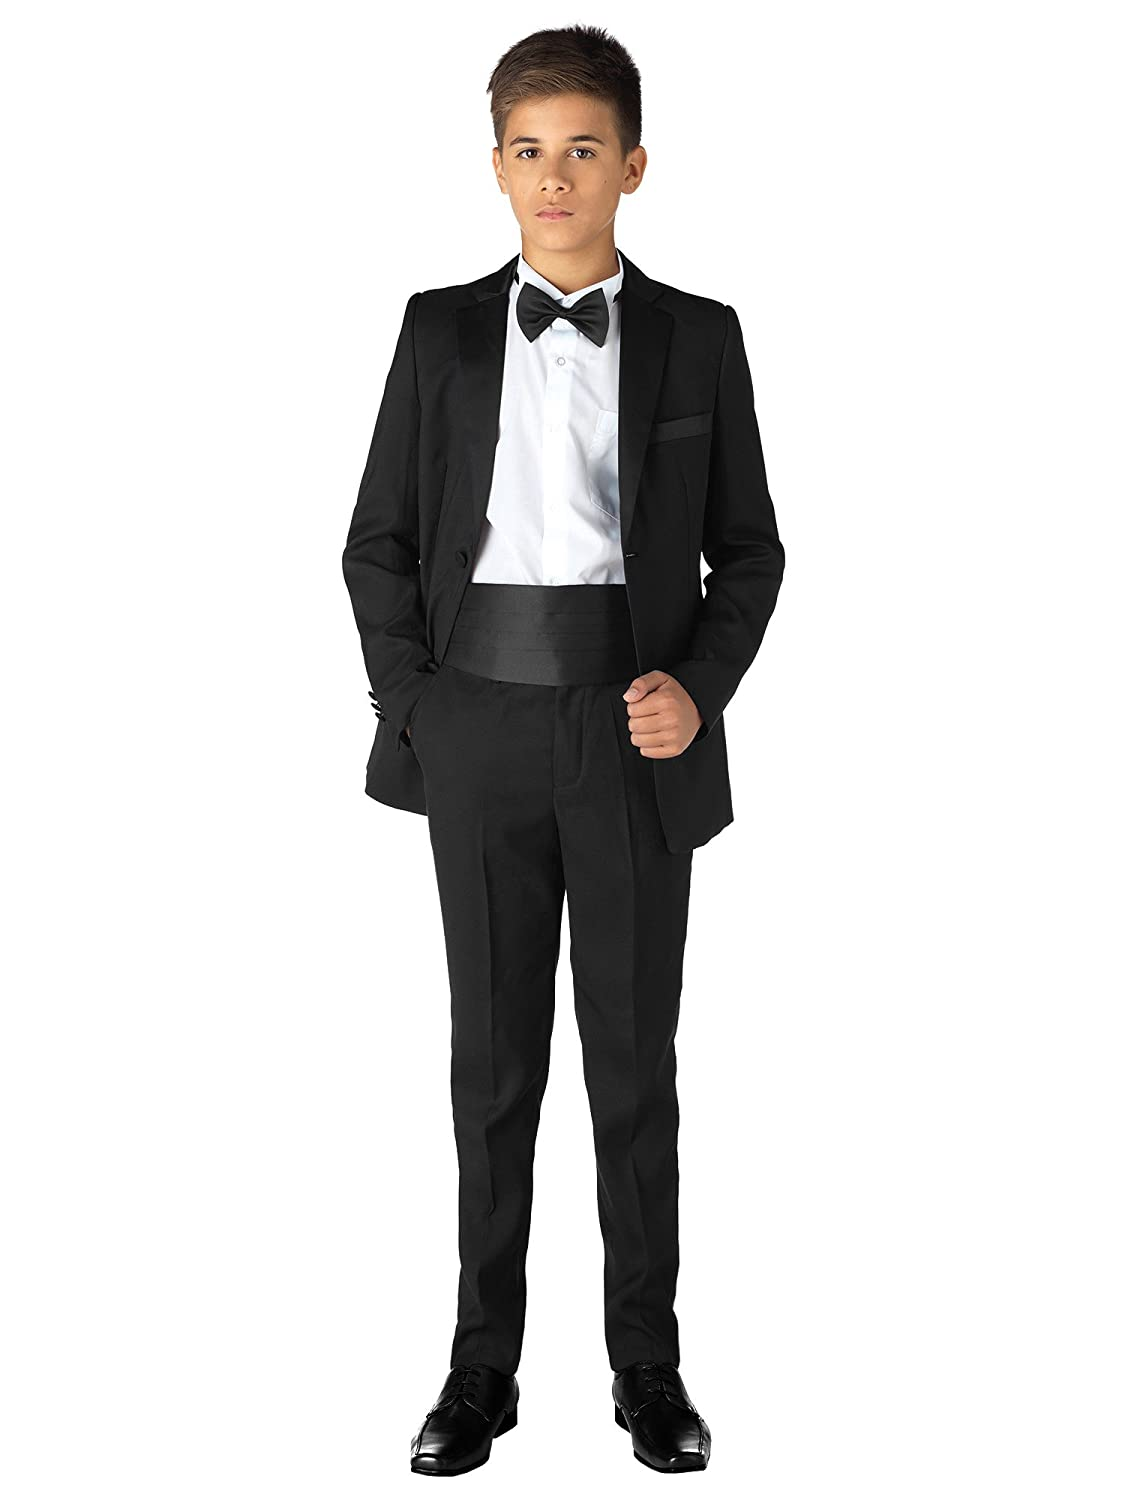 8ea6150fe05e Paisley of London, Boys Black Tuxedo, Boys Dinner Suit, Prom Suit, Boys  Black Suits, 12 Months - 13 Years: Amazon.co.uk: Clothing